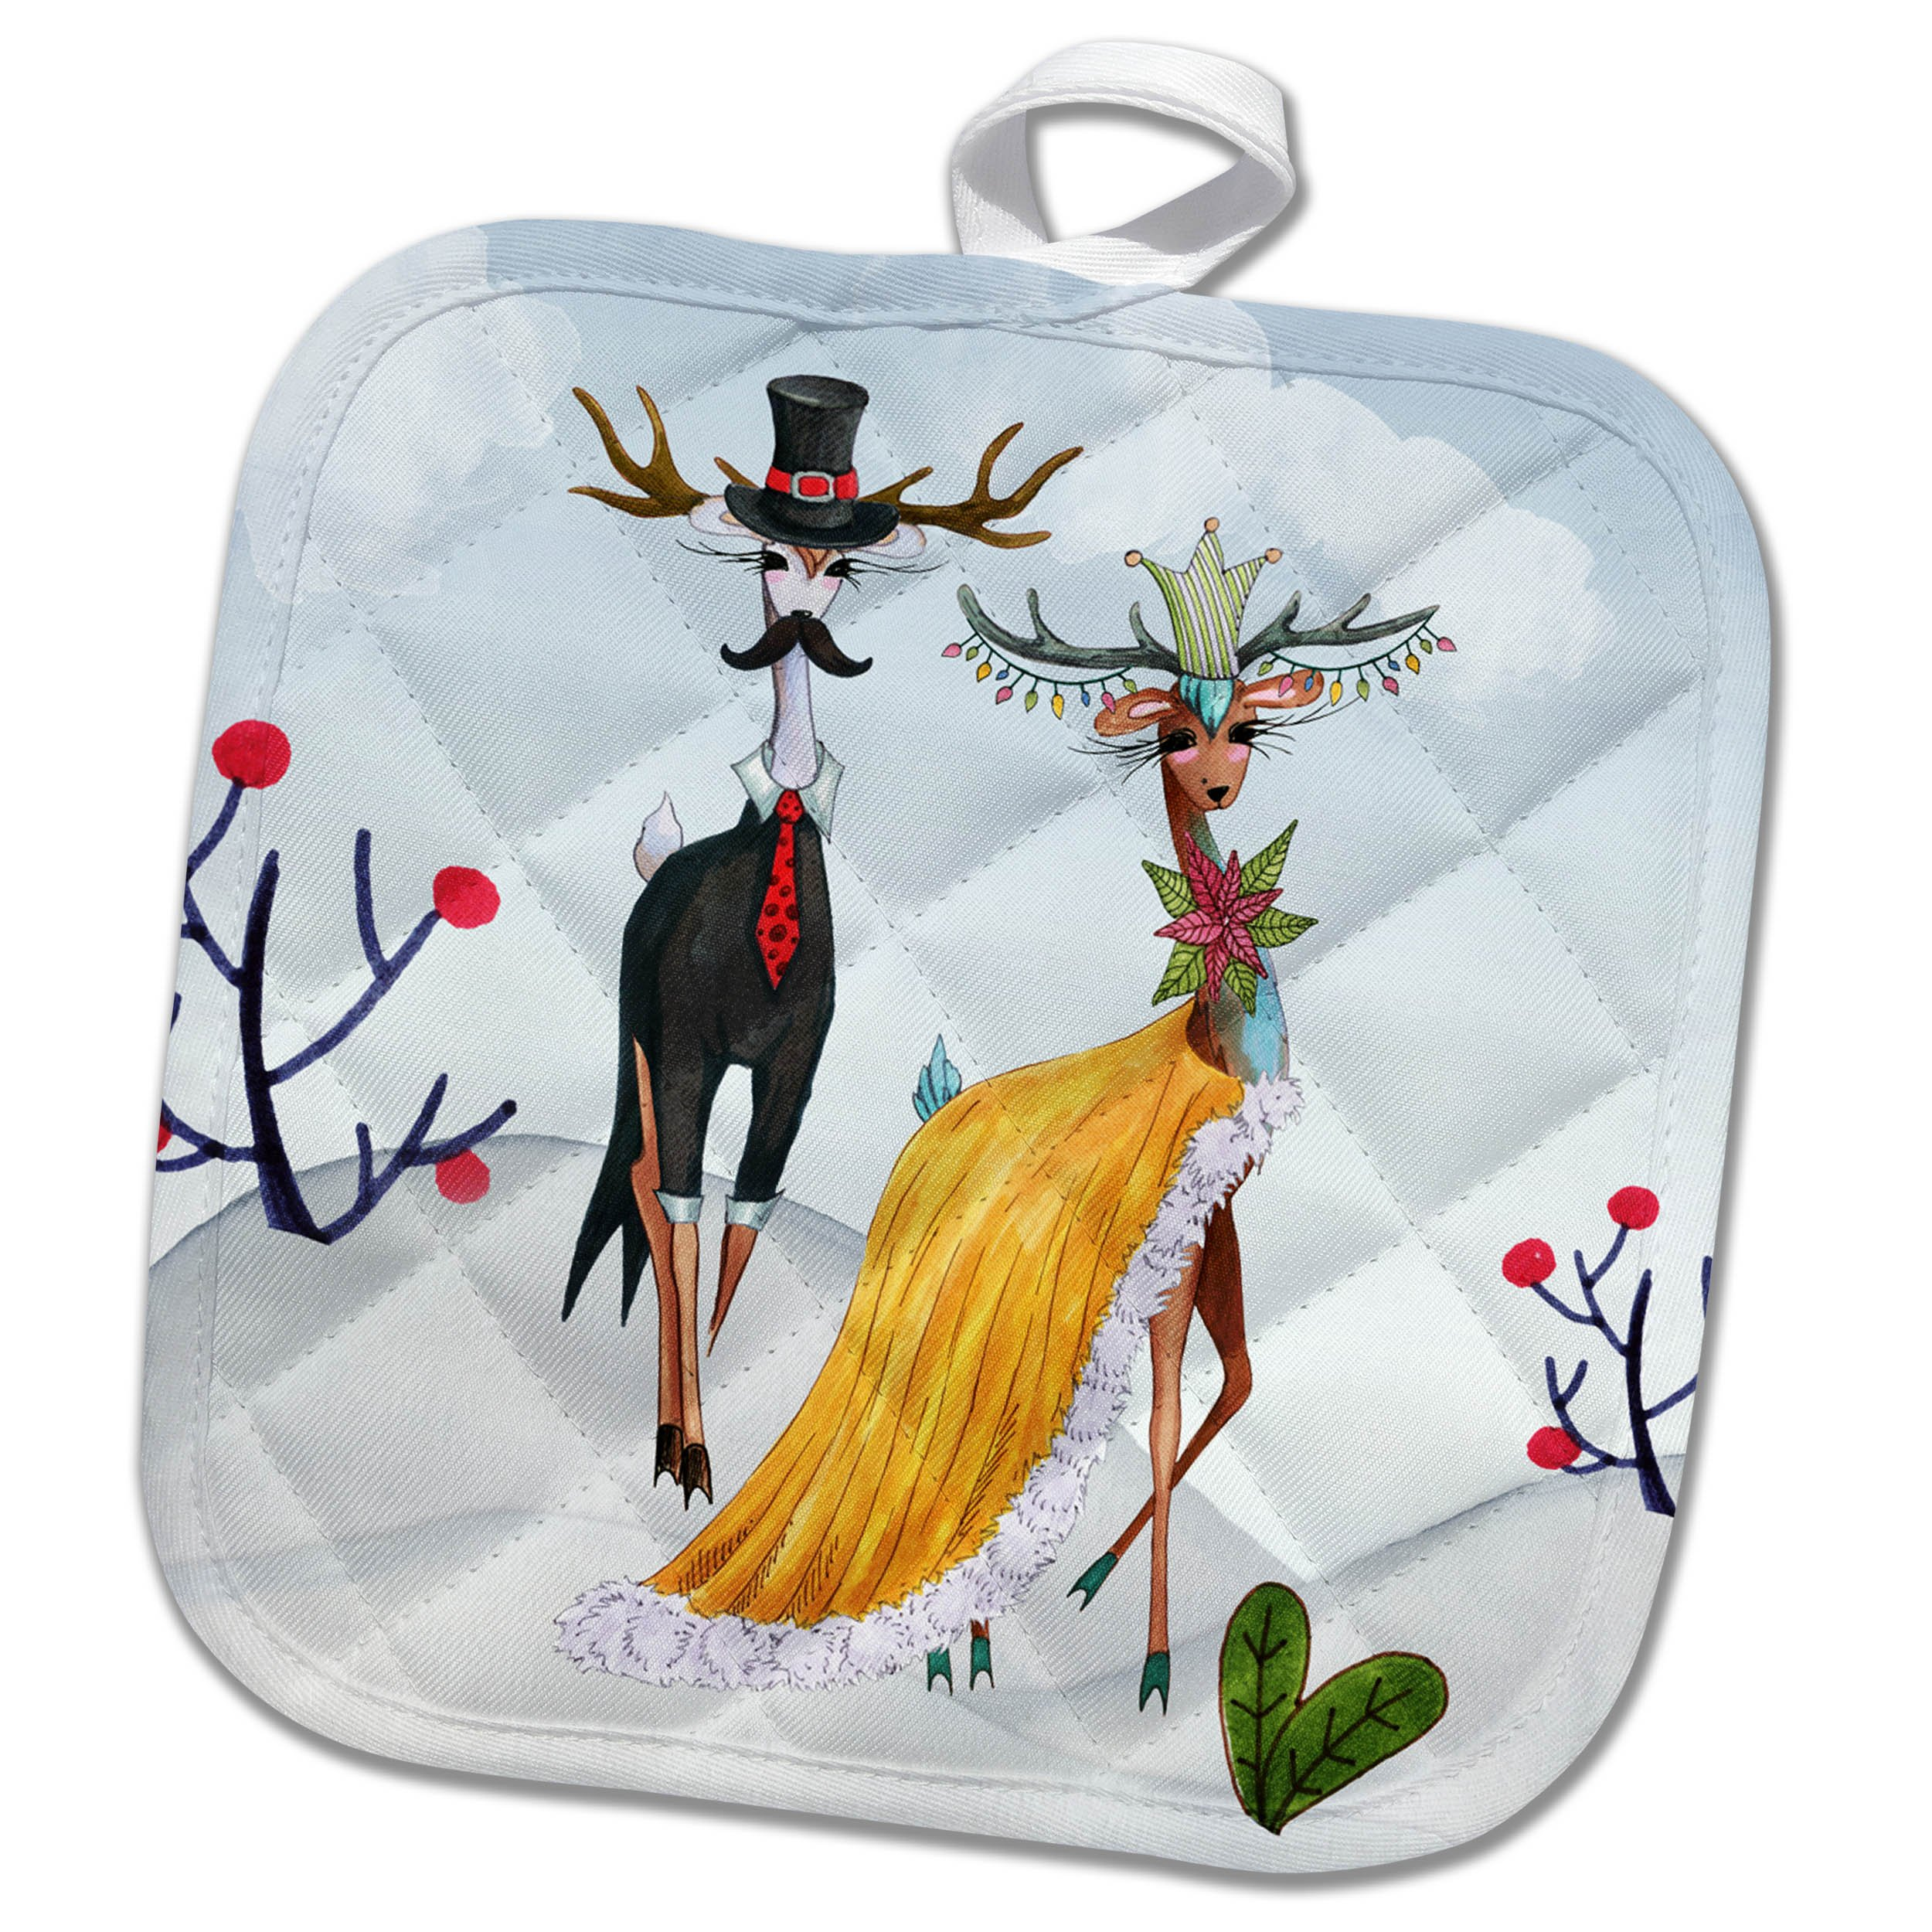 3dRose Trendy Fantasy Winter Fashion Show Deer Animal in Cool Dress Potholders, 8 x 8, White